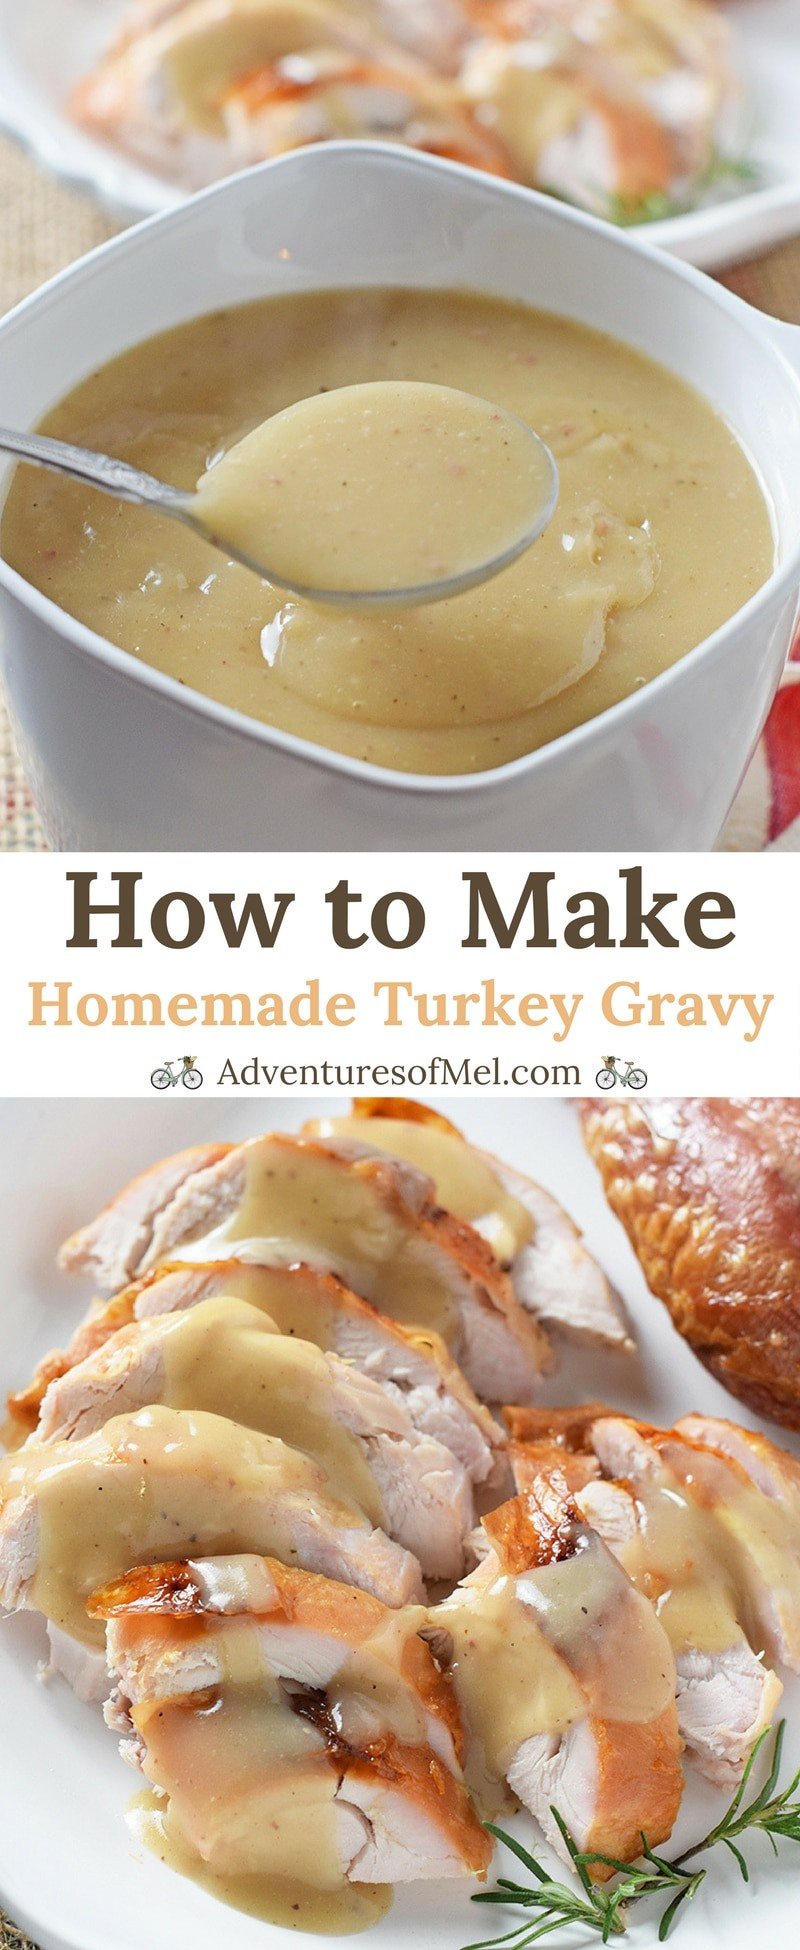 Homemade Turkey Gravy, made with leftover turkey drippings and neck broth. Delicious side dish with turkey, mashed potatoes, and all the fixings!